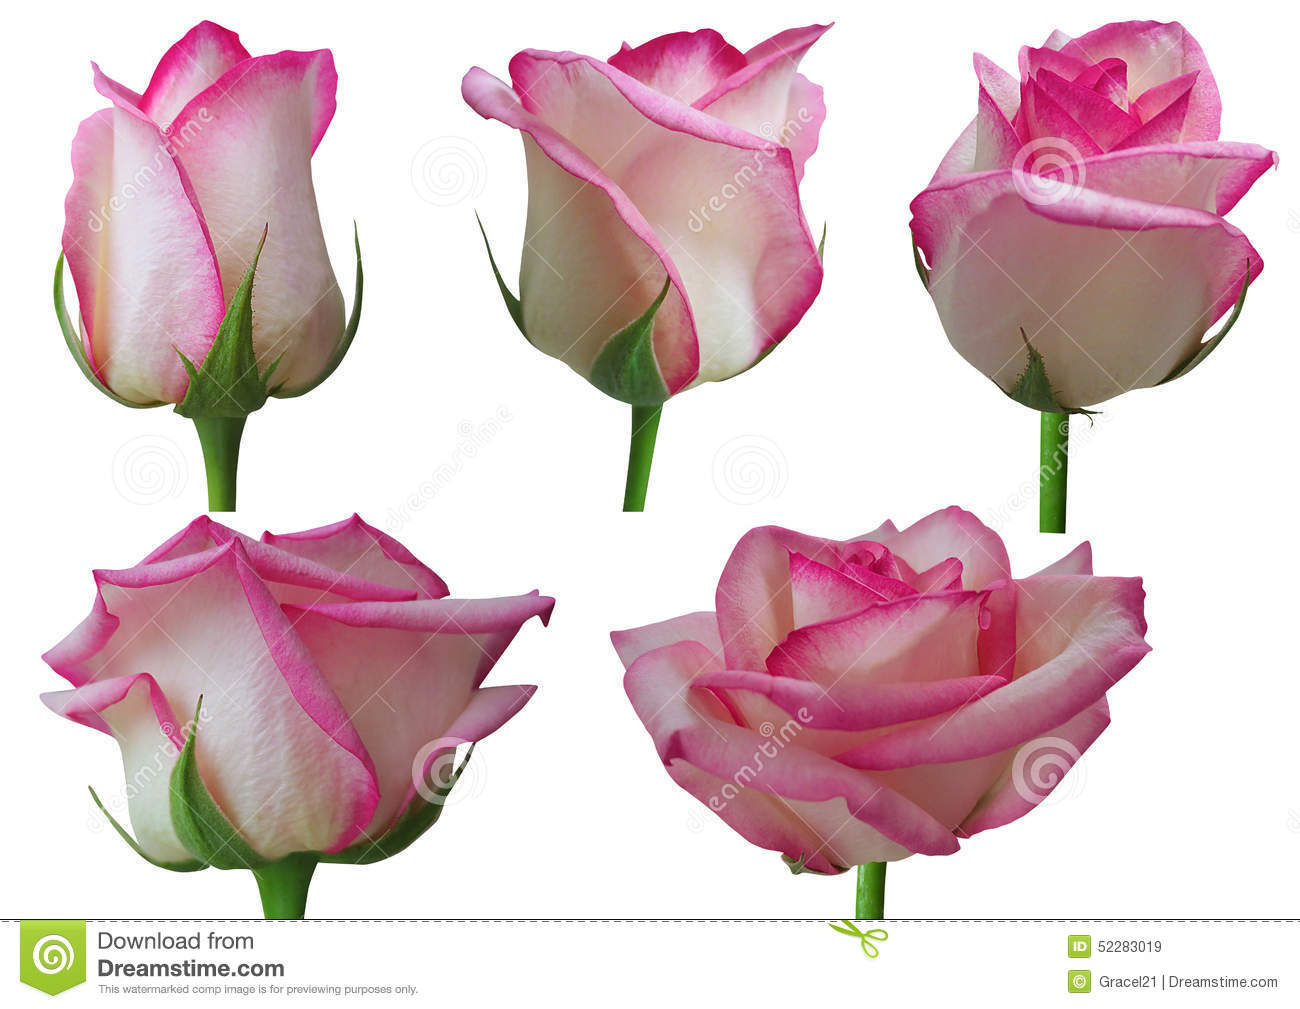 Rose Growth Stages Stock Photo - Image: 52283019